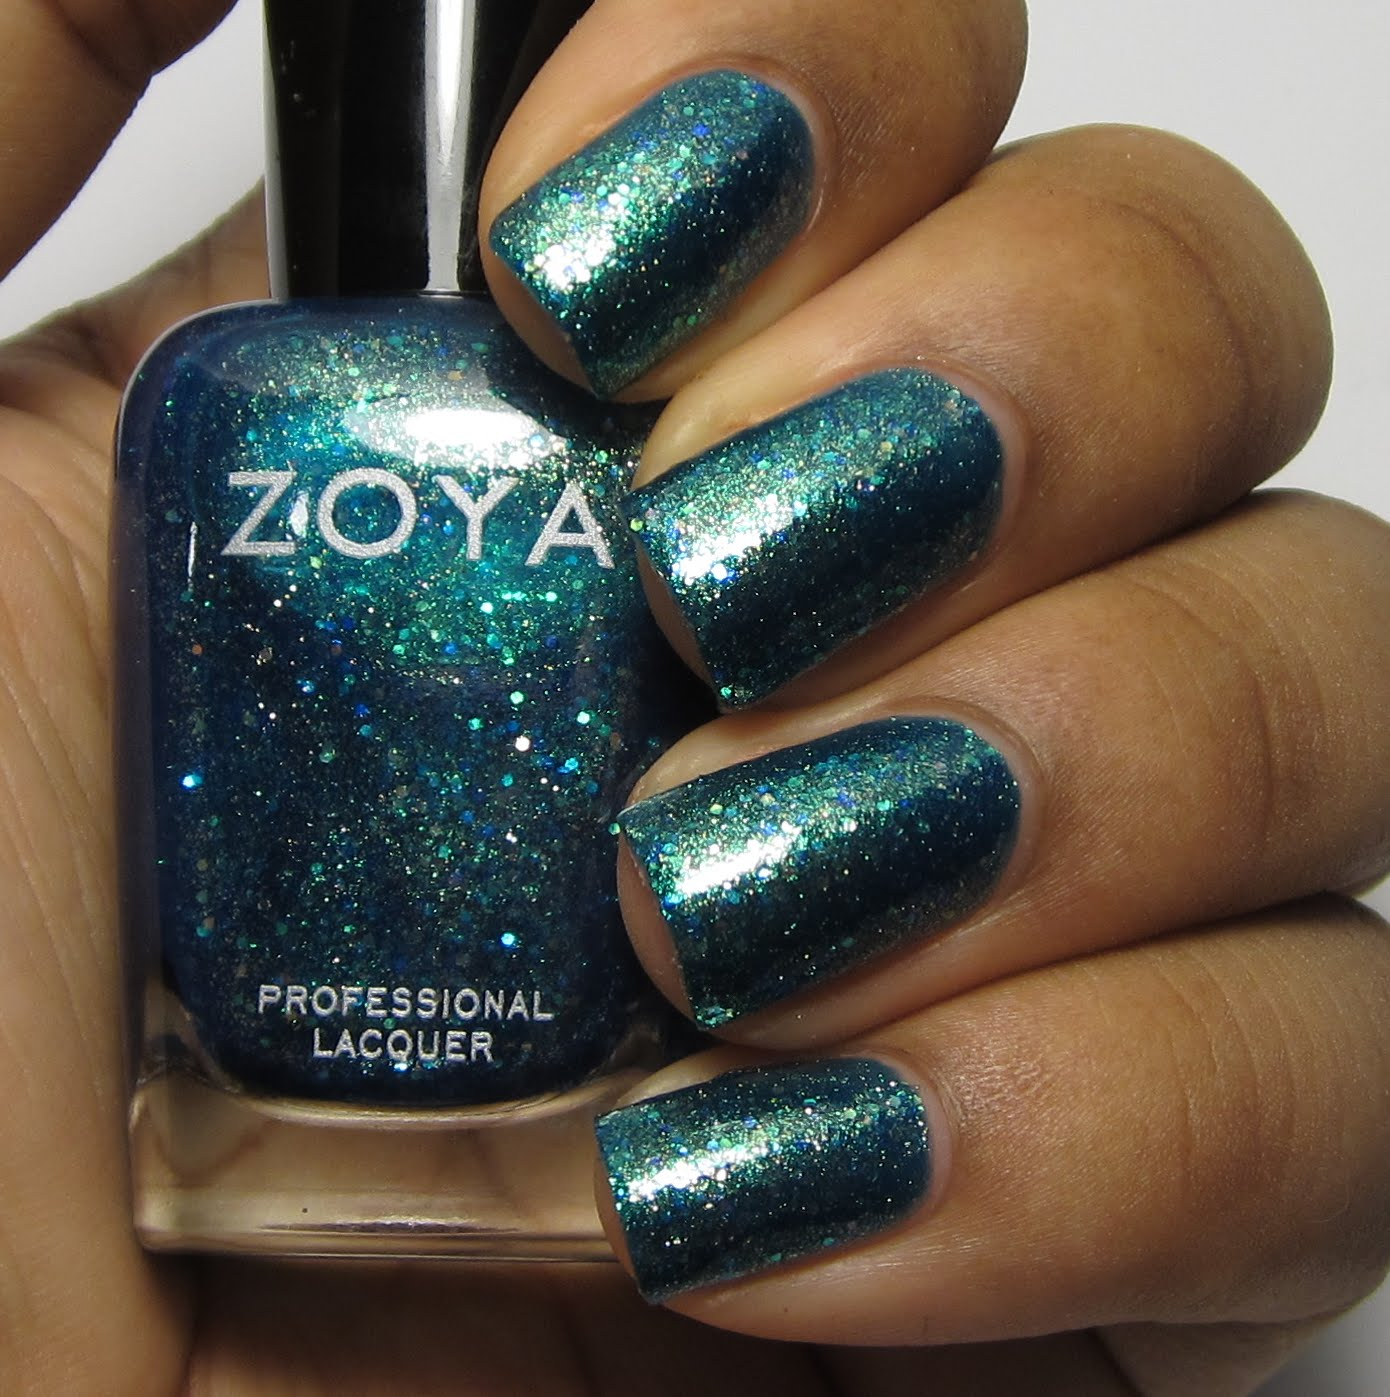 Zoya Muse Bubbly Collection blue nail polish swatch